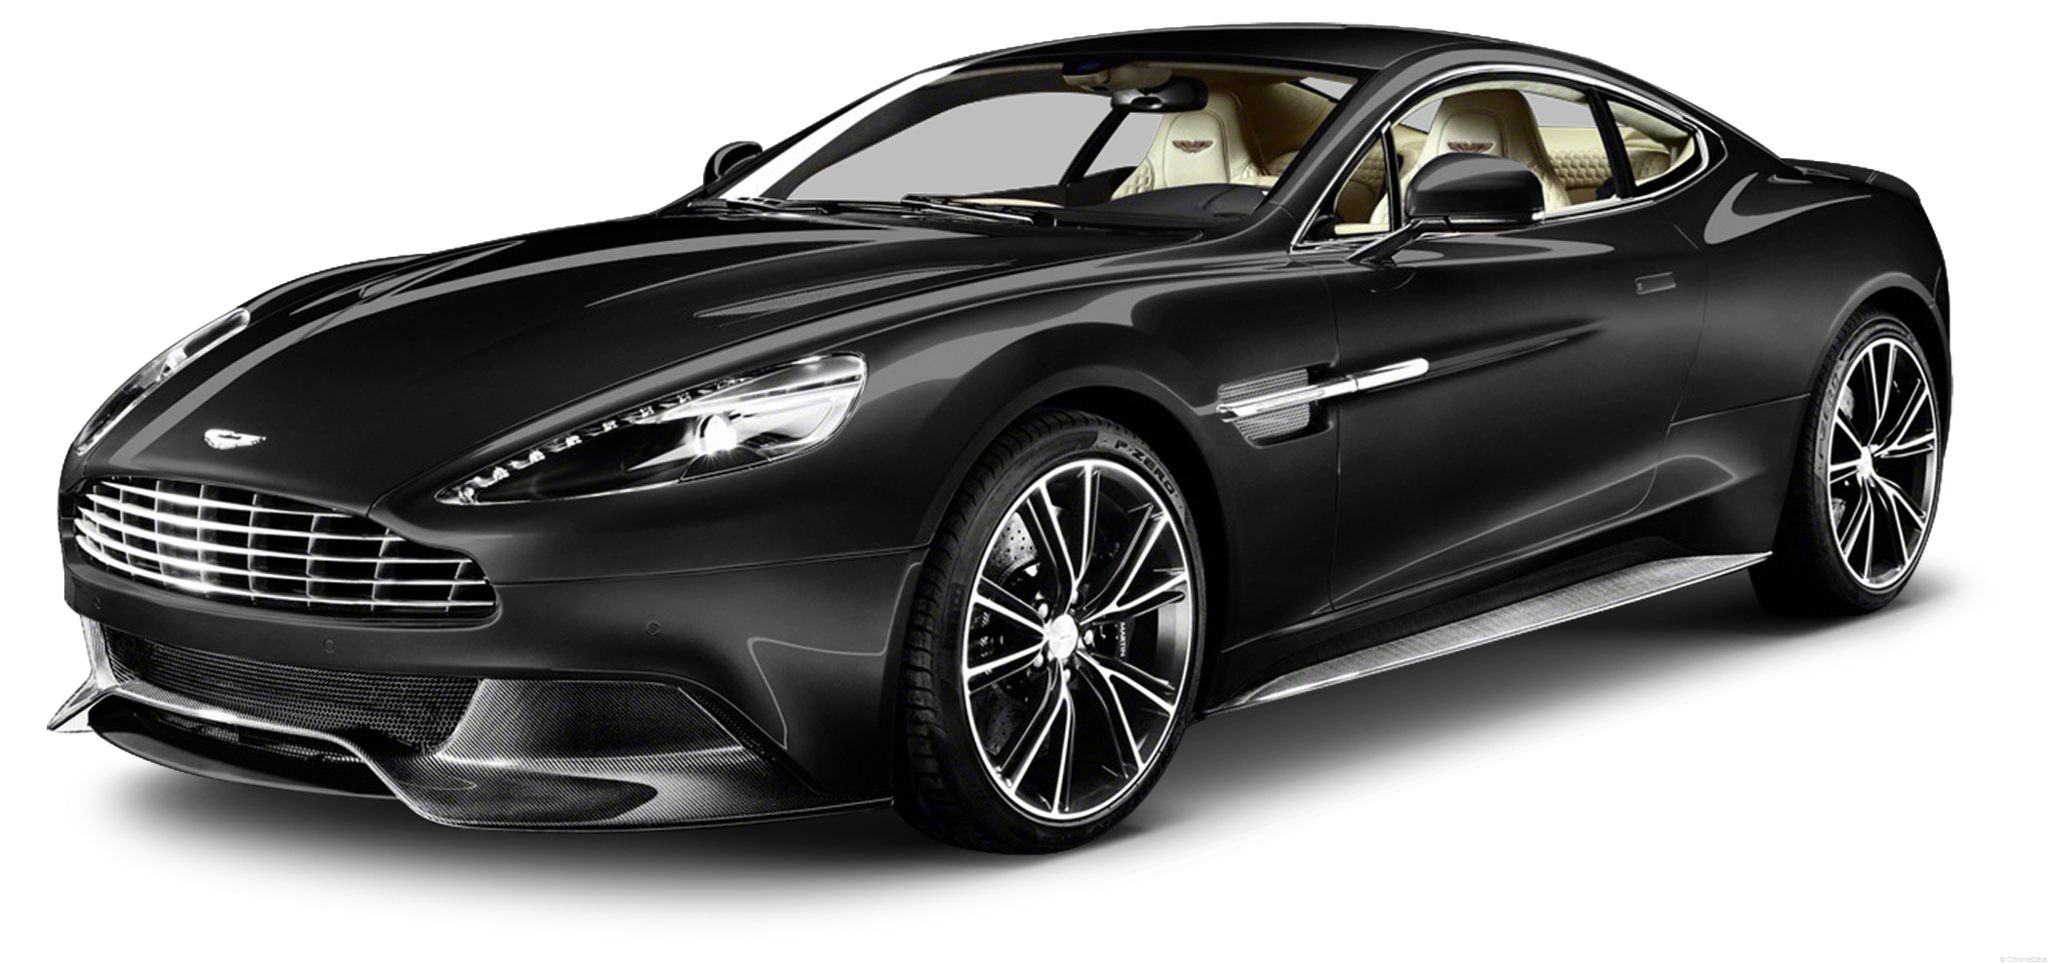 1000+ images about Aston Martin Vanquish on Pinterest.